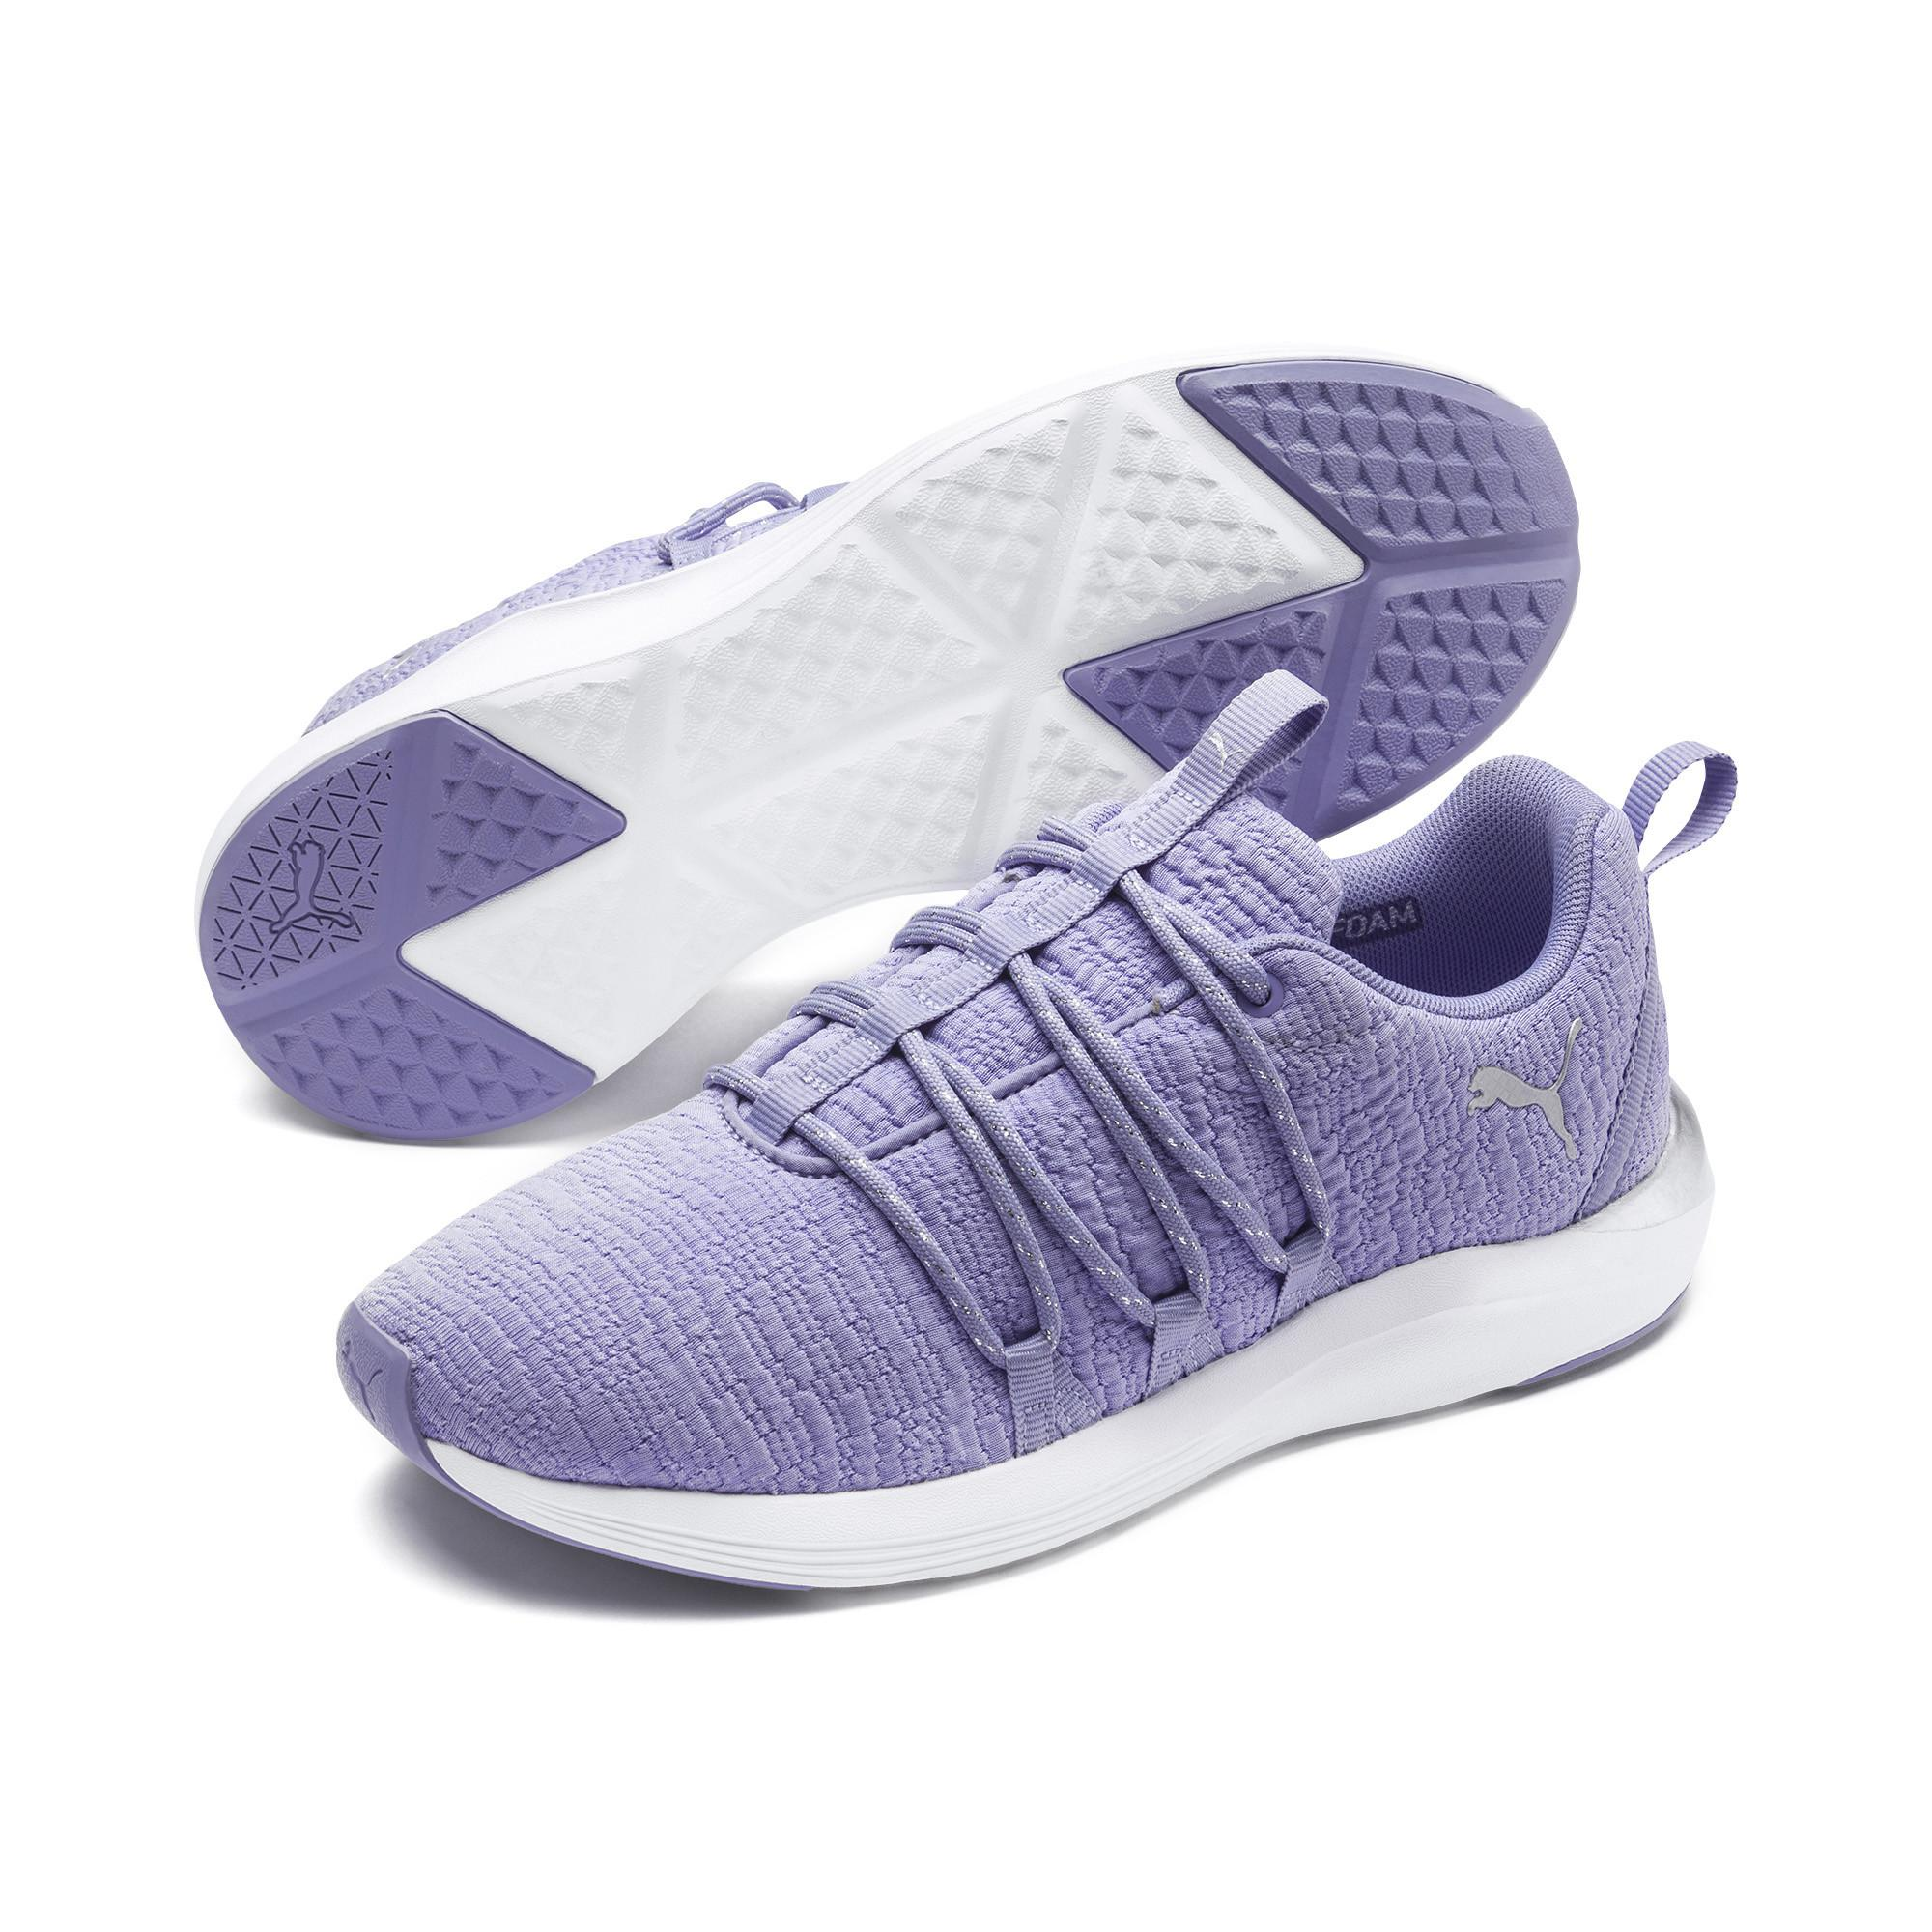 PUMA - Purple Prowl Alt Metallic Training Shoes - Lyst. View fullscreen 48b0abf43